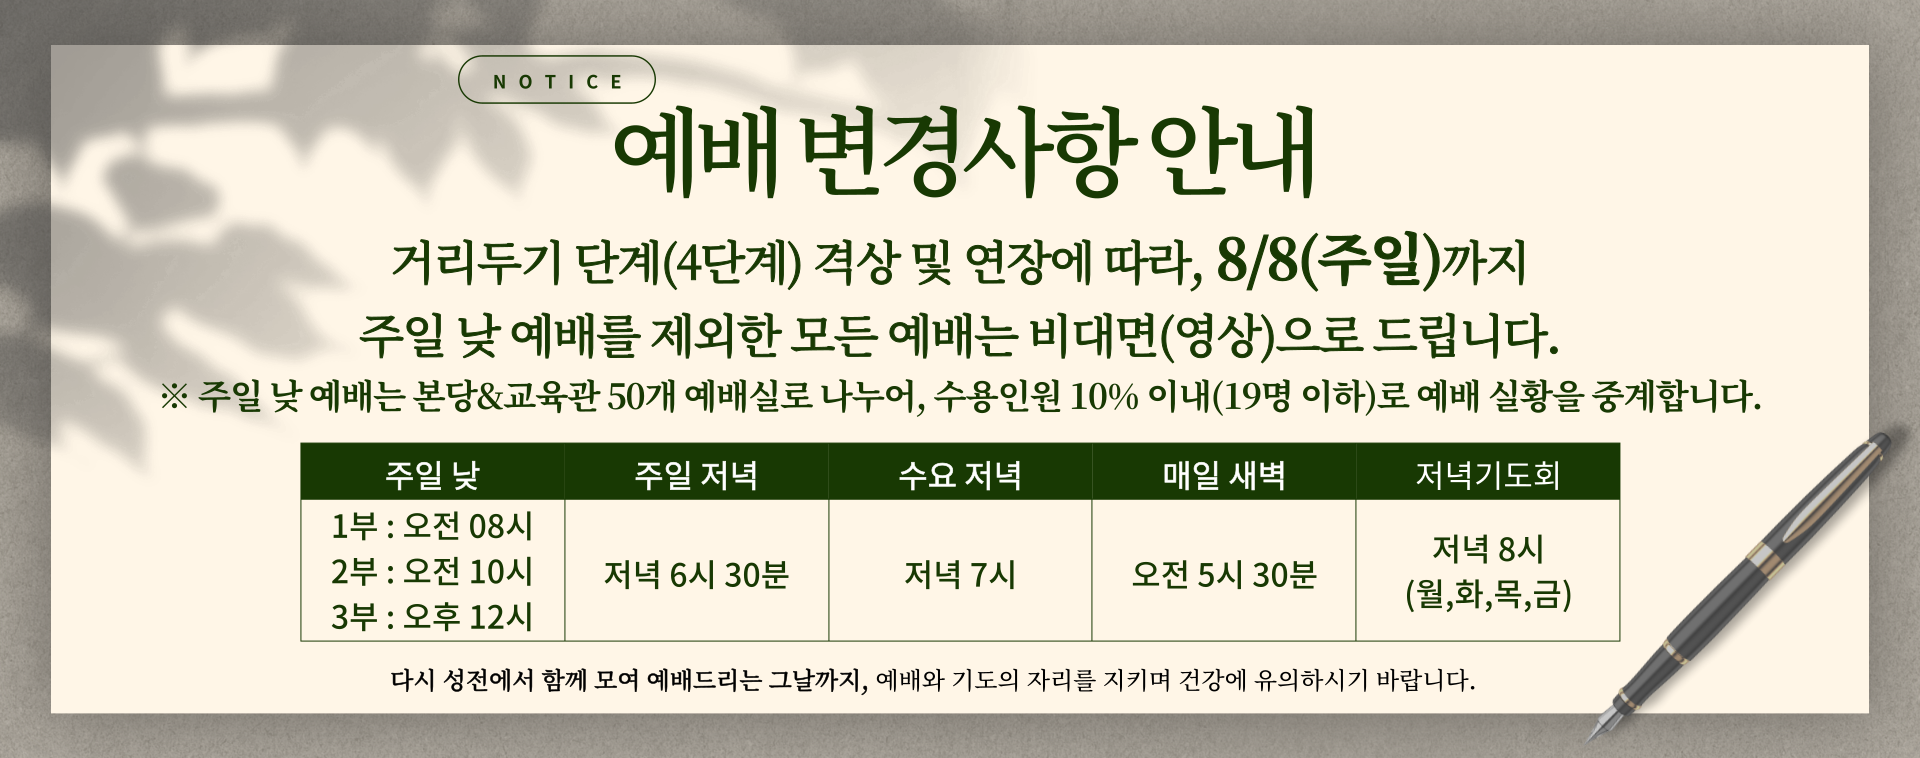 210731_notice2.png